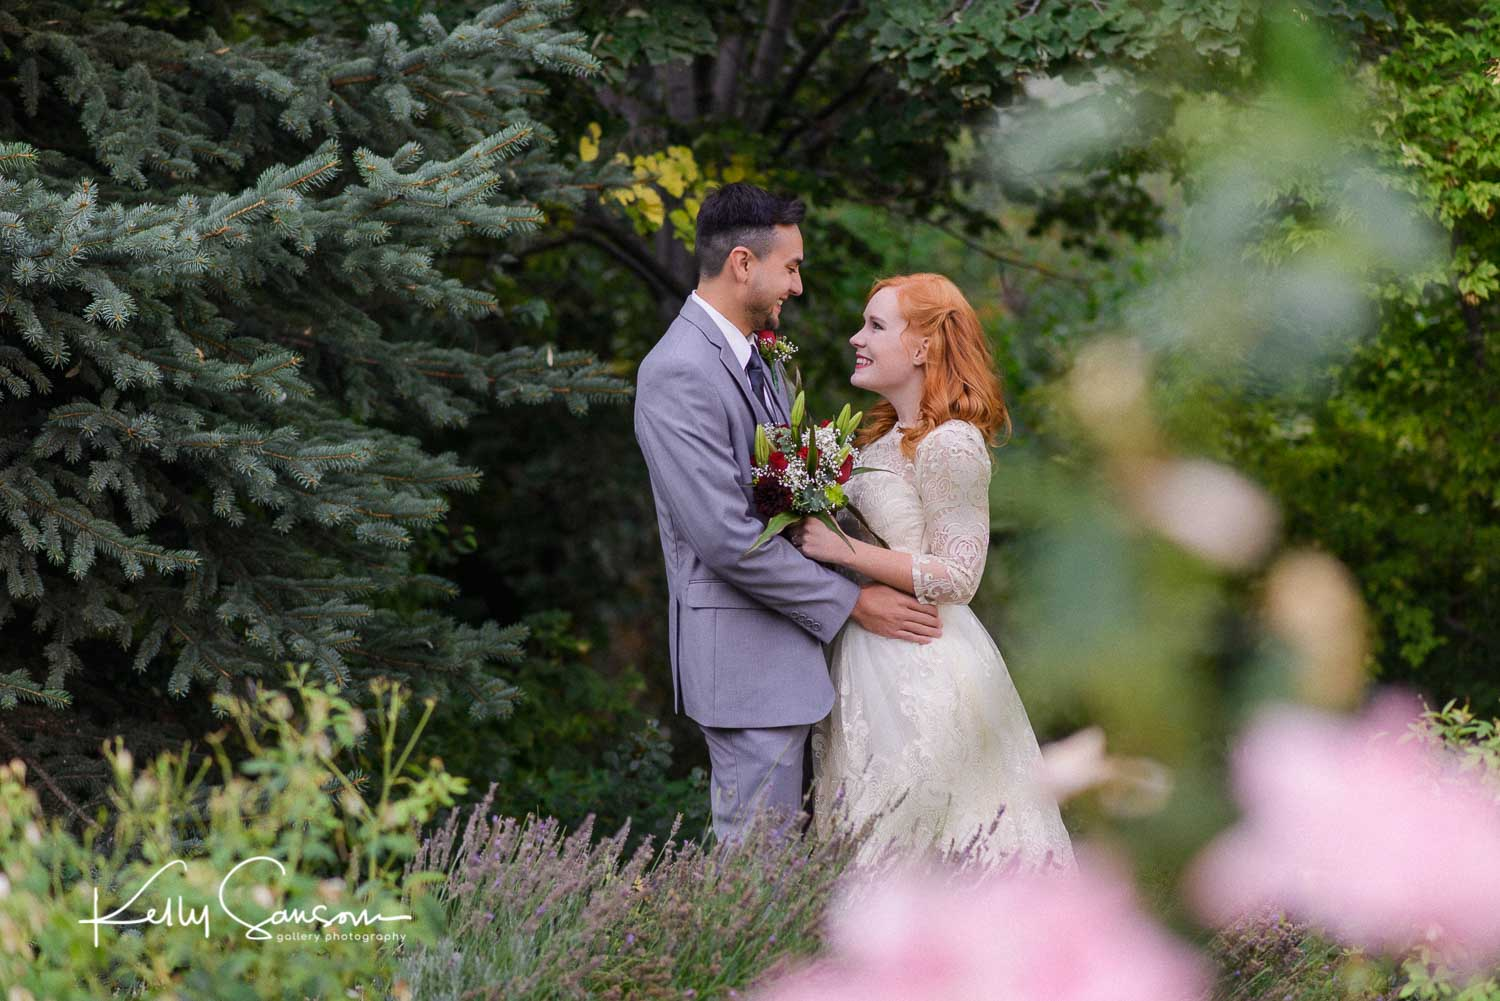 A groom pulls a bride close in front of pine trees for Utah bridal photography.